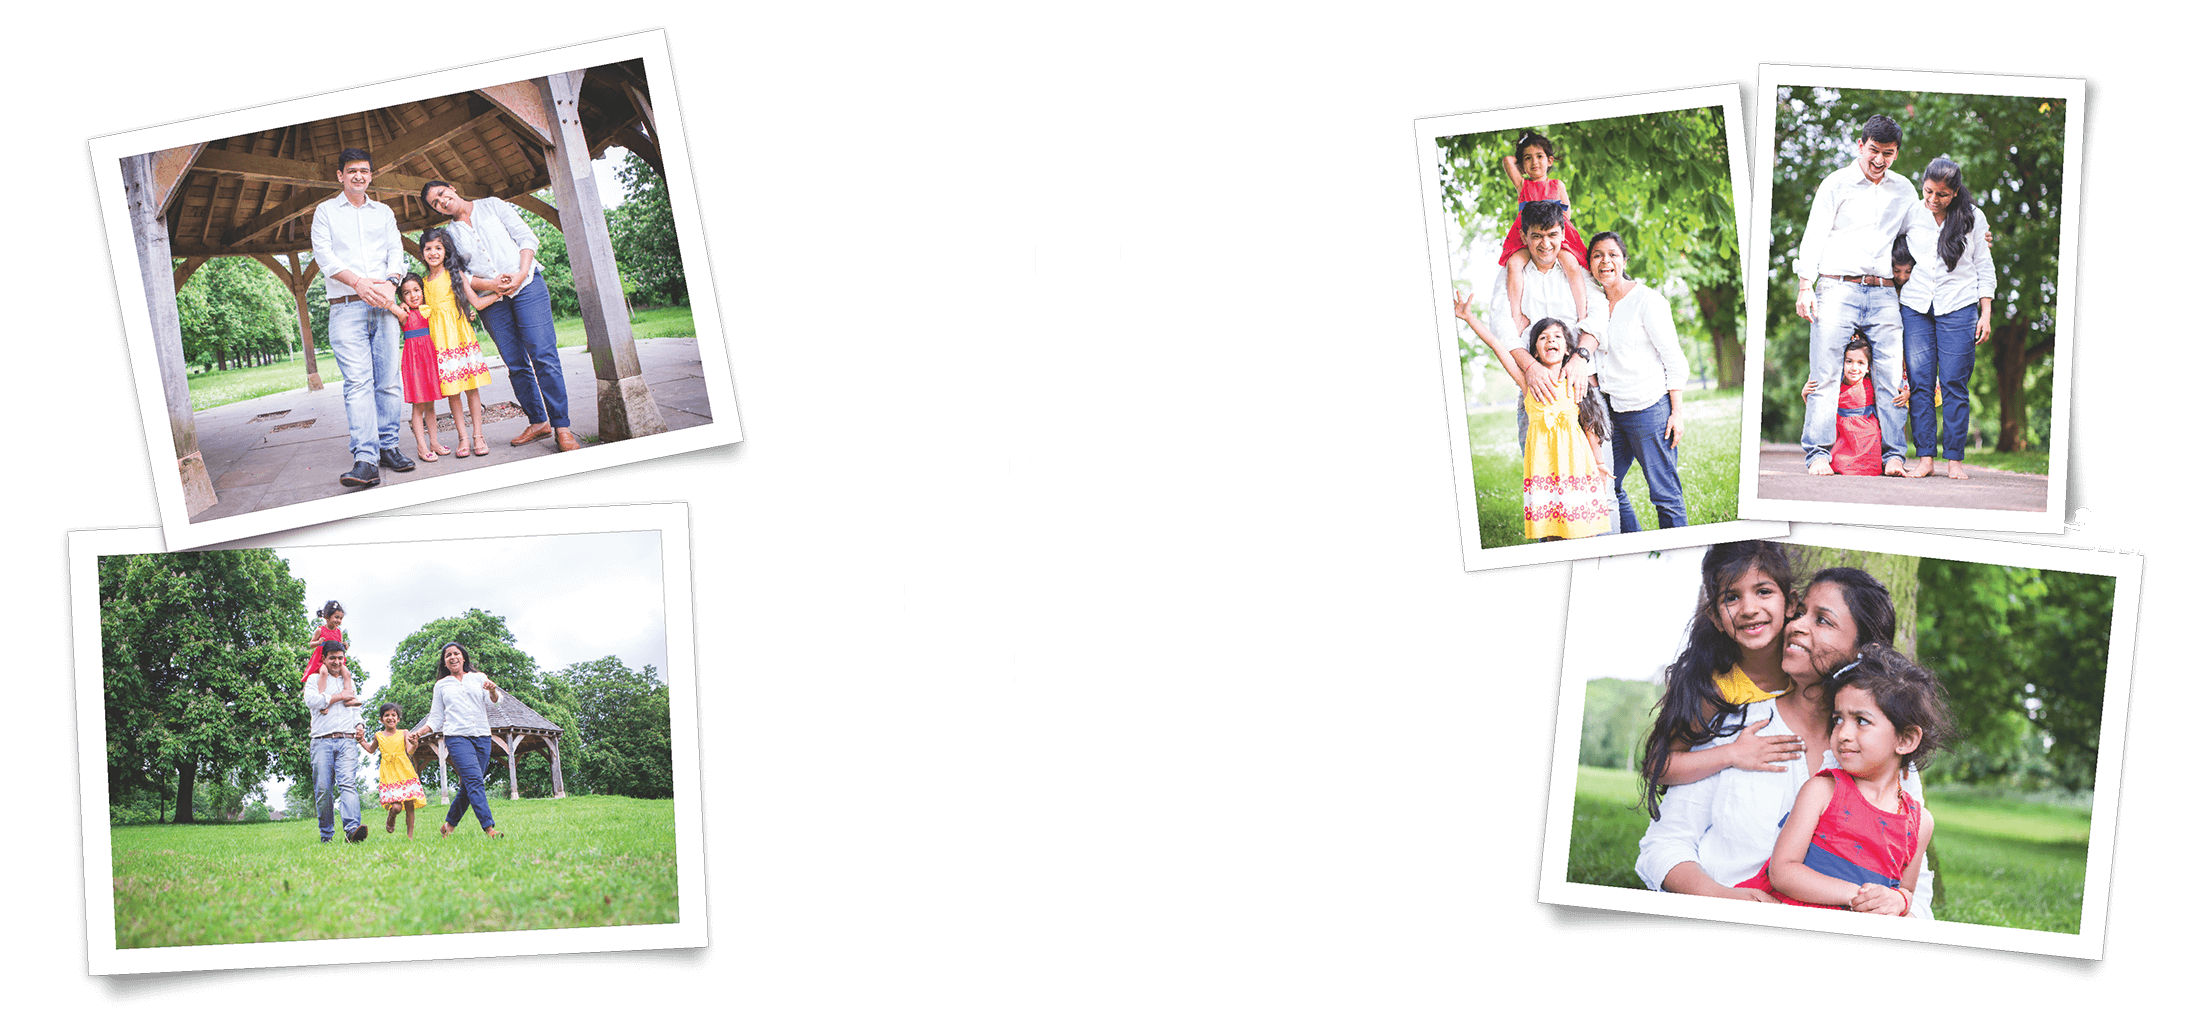 Swati spent endless hours in her kitchen surrounded by her little jars of goodness. This post 8pm kitchen table entreprise was the birth of the Cheeky Food Co.